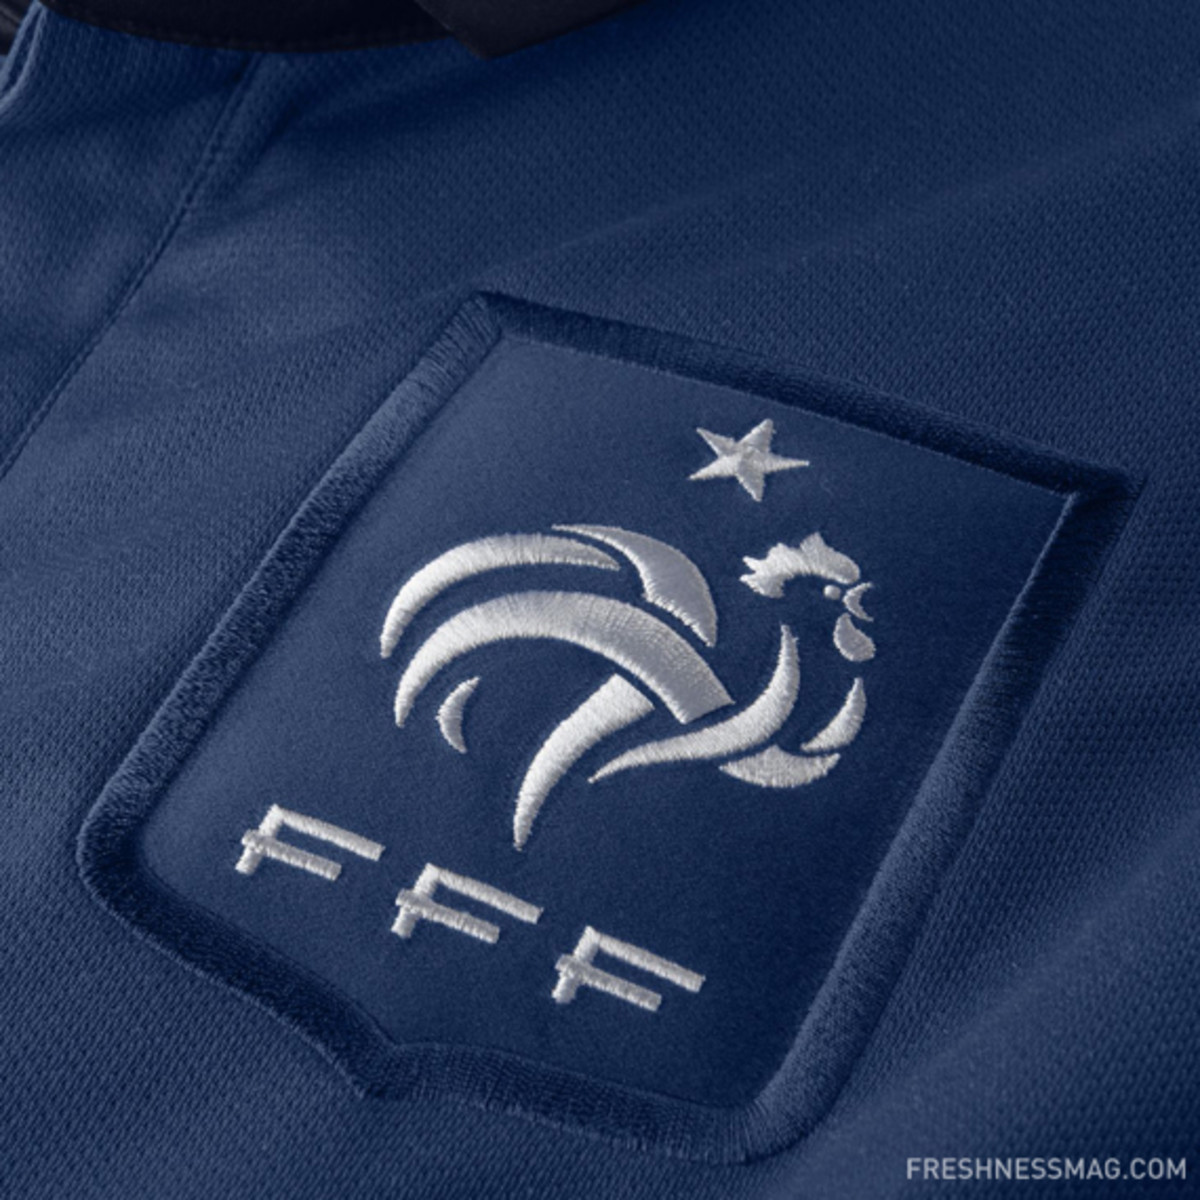 Nike 2011/2012 French Football Federation Official Home Jersey | Available Now - Freshness Mag